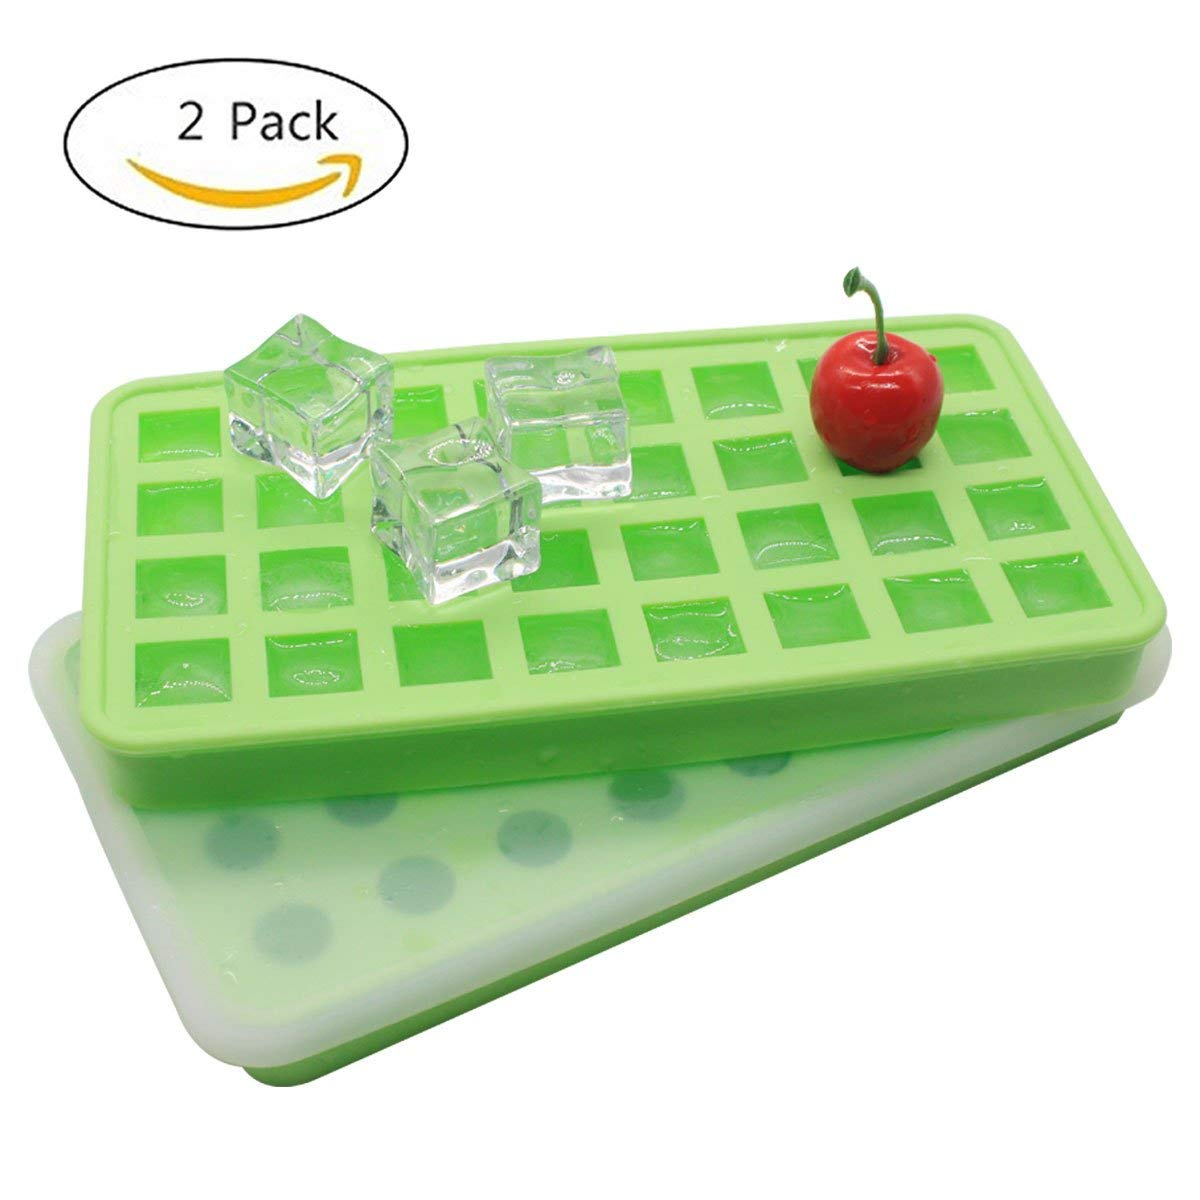 Ice Cube Trays 2 Pack Full Silicone- Easy Release Flexible 32 Ice Trays Spill-Resistant Removable Stack - Small Ice Cube Tray LFGB Certified and BPA Free,Stackable Durable and Dishwasher Safe (Green)